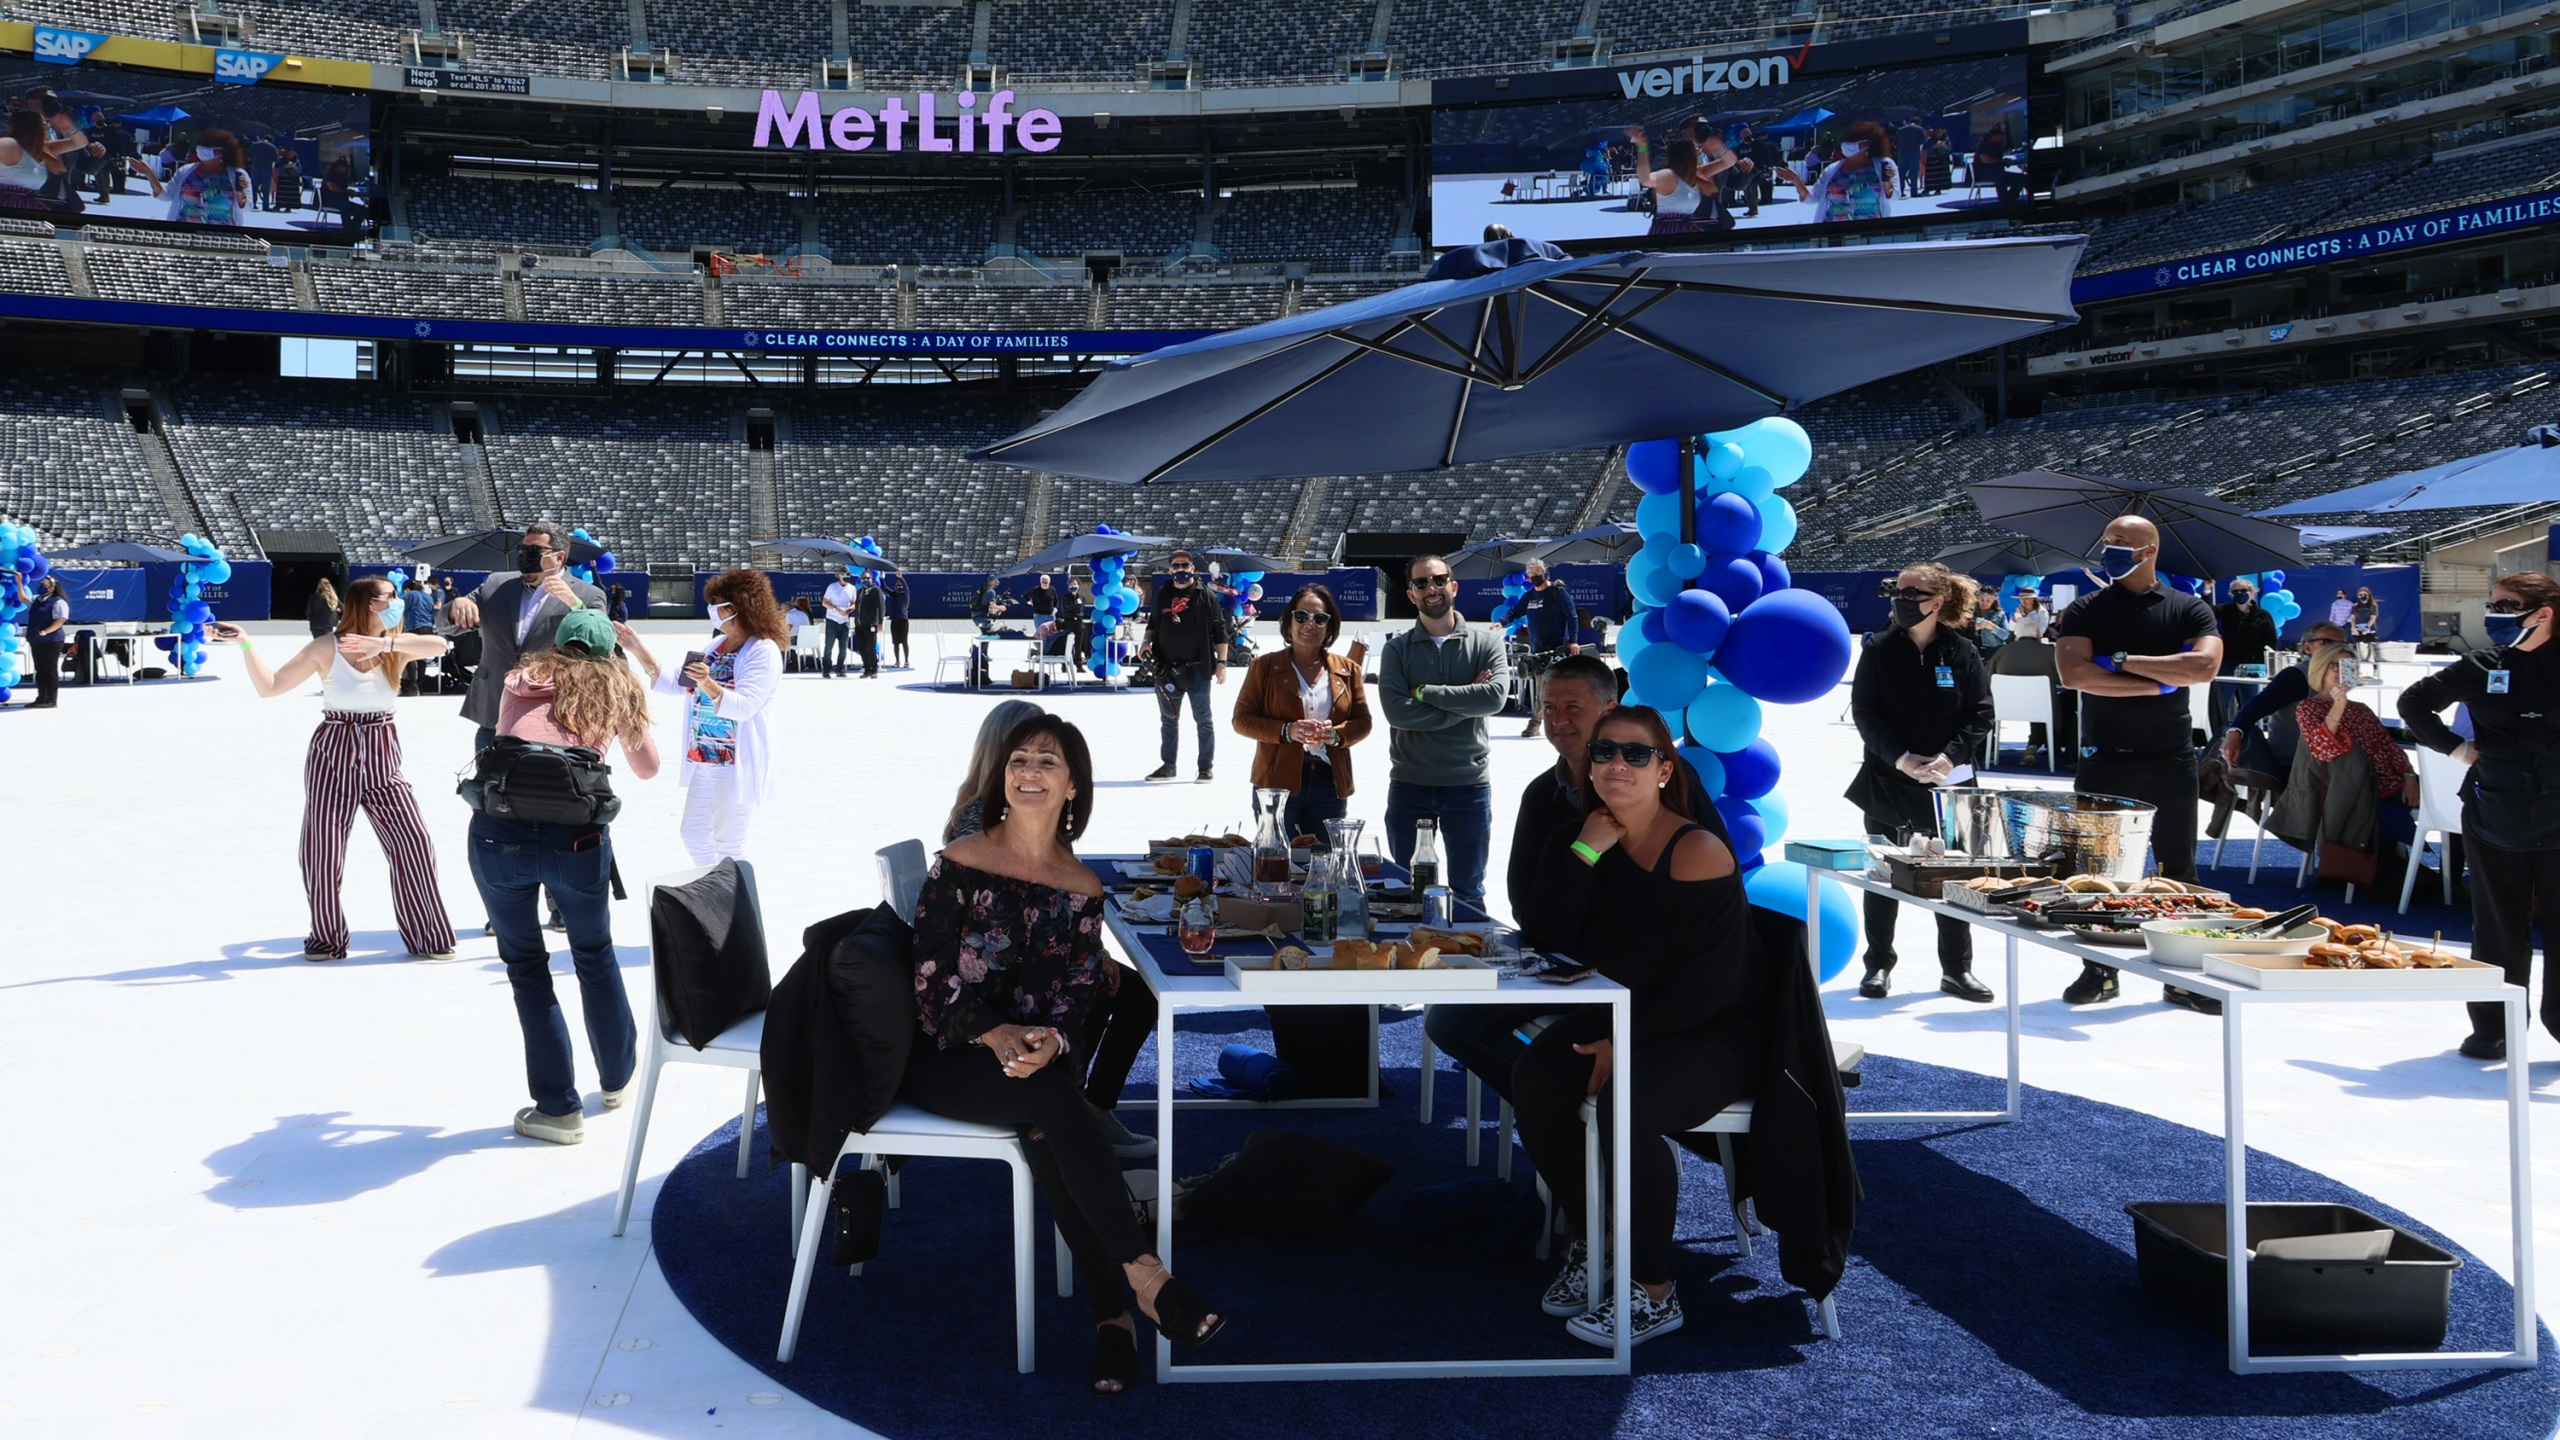 Families reunite at MetLife Stadium